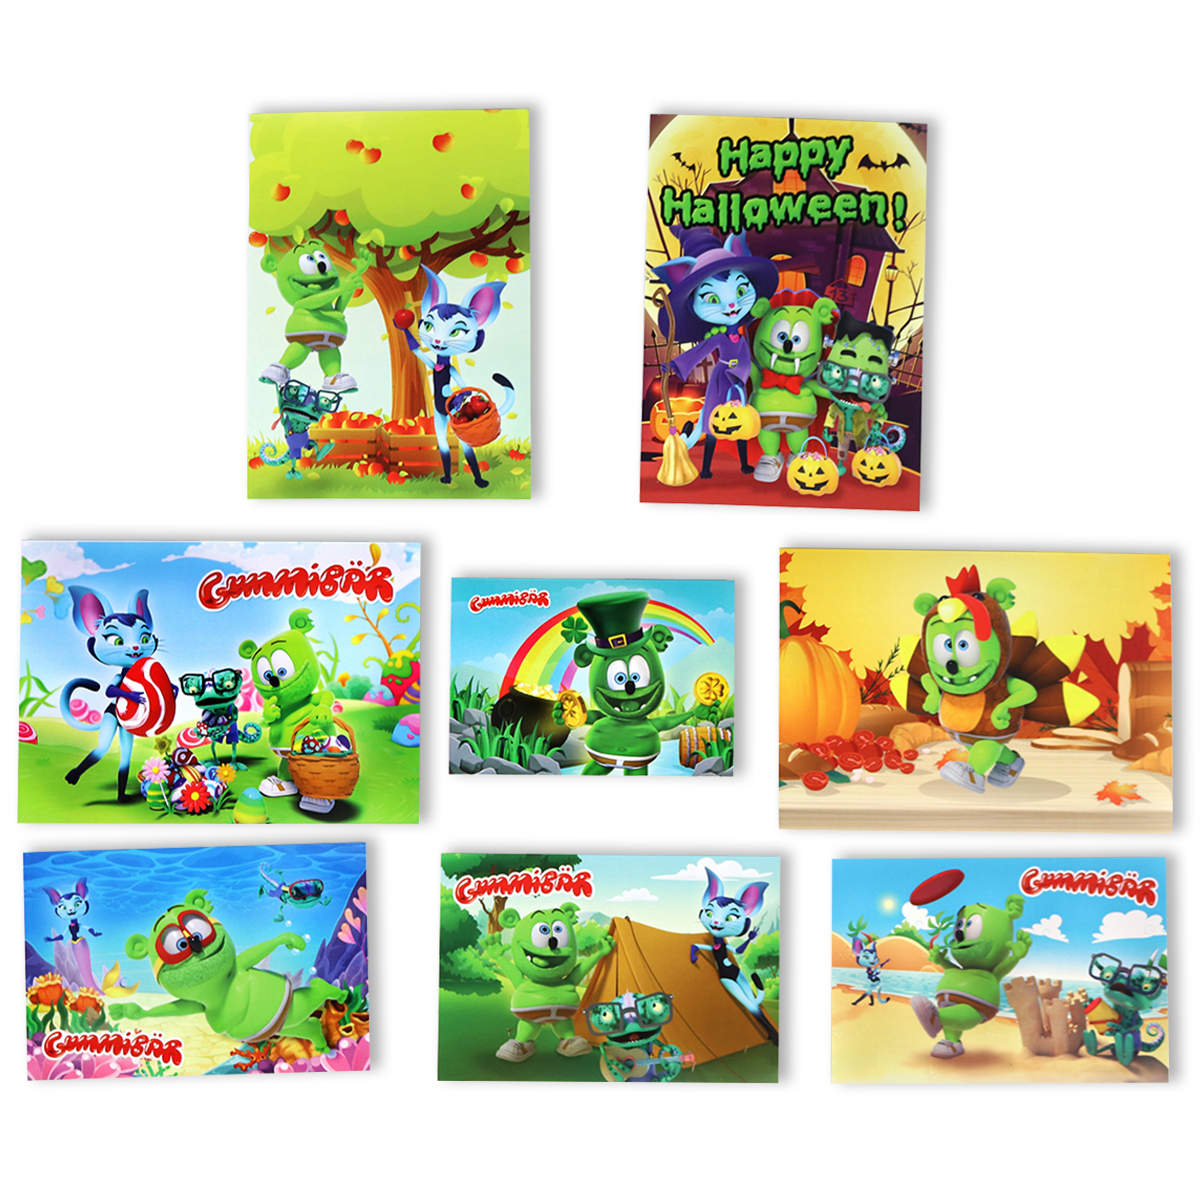 Gummibär Greeting Card 5 Million Fun Pack